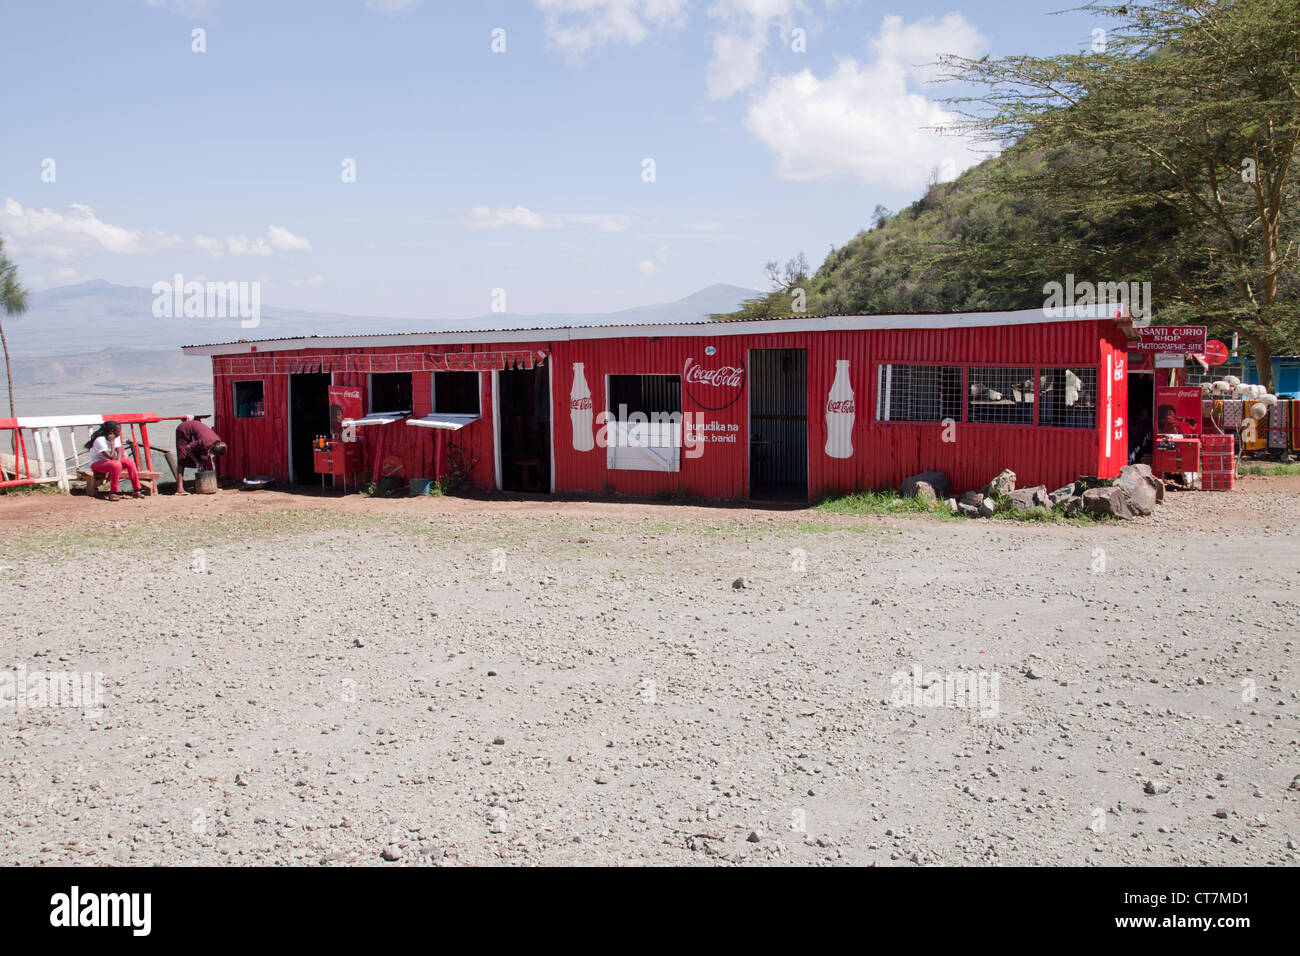 Cocacola red painted café at a roadside stop looking over the Great Rift Valley, Kenya, Africa Stock Photo